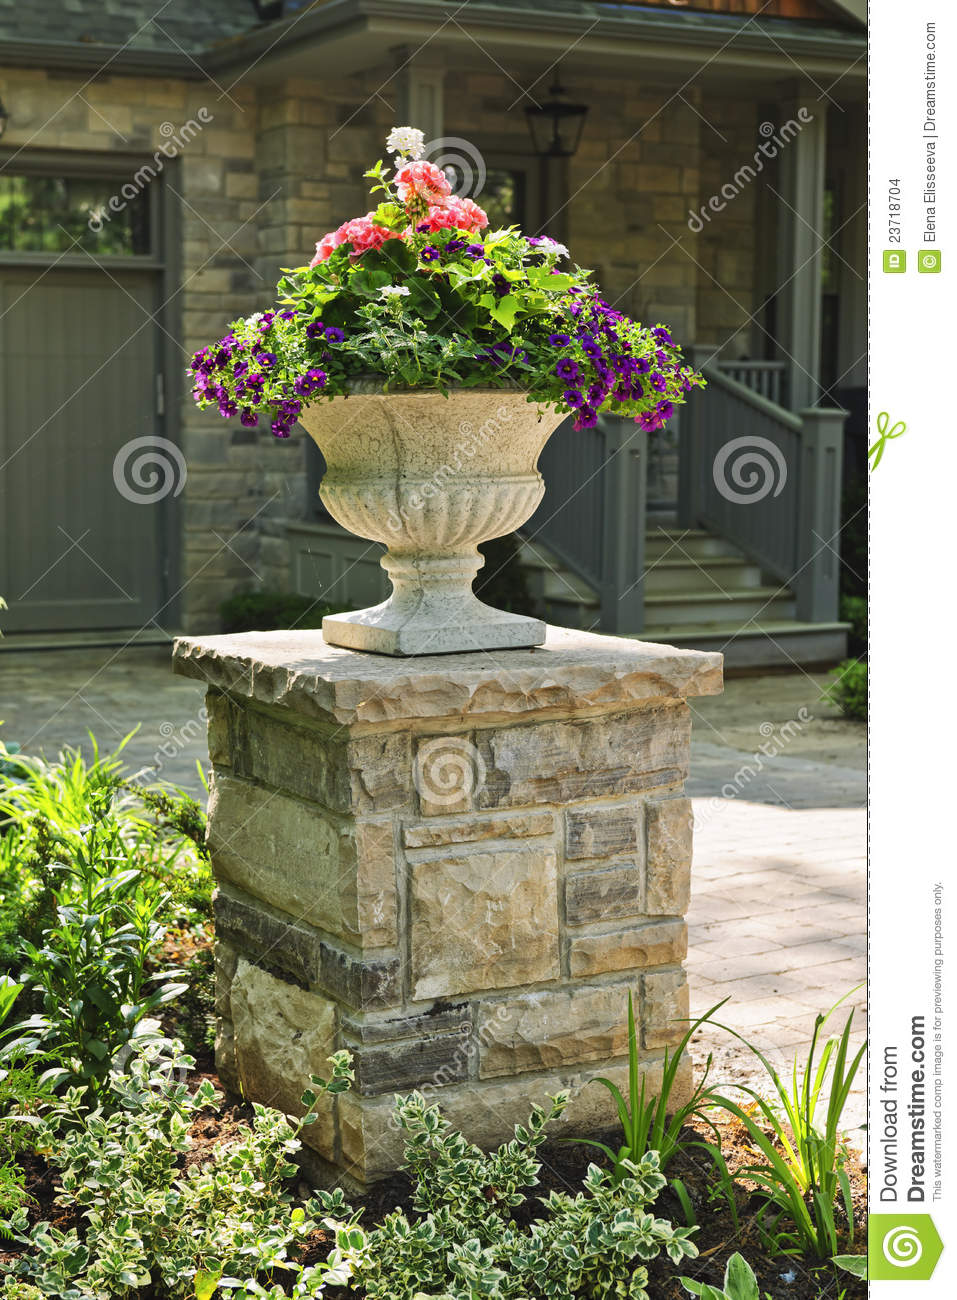 Stone Planter In Front Of House Stock Photo - Image of ...